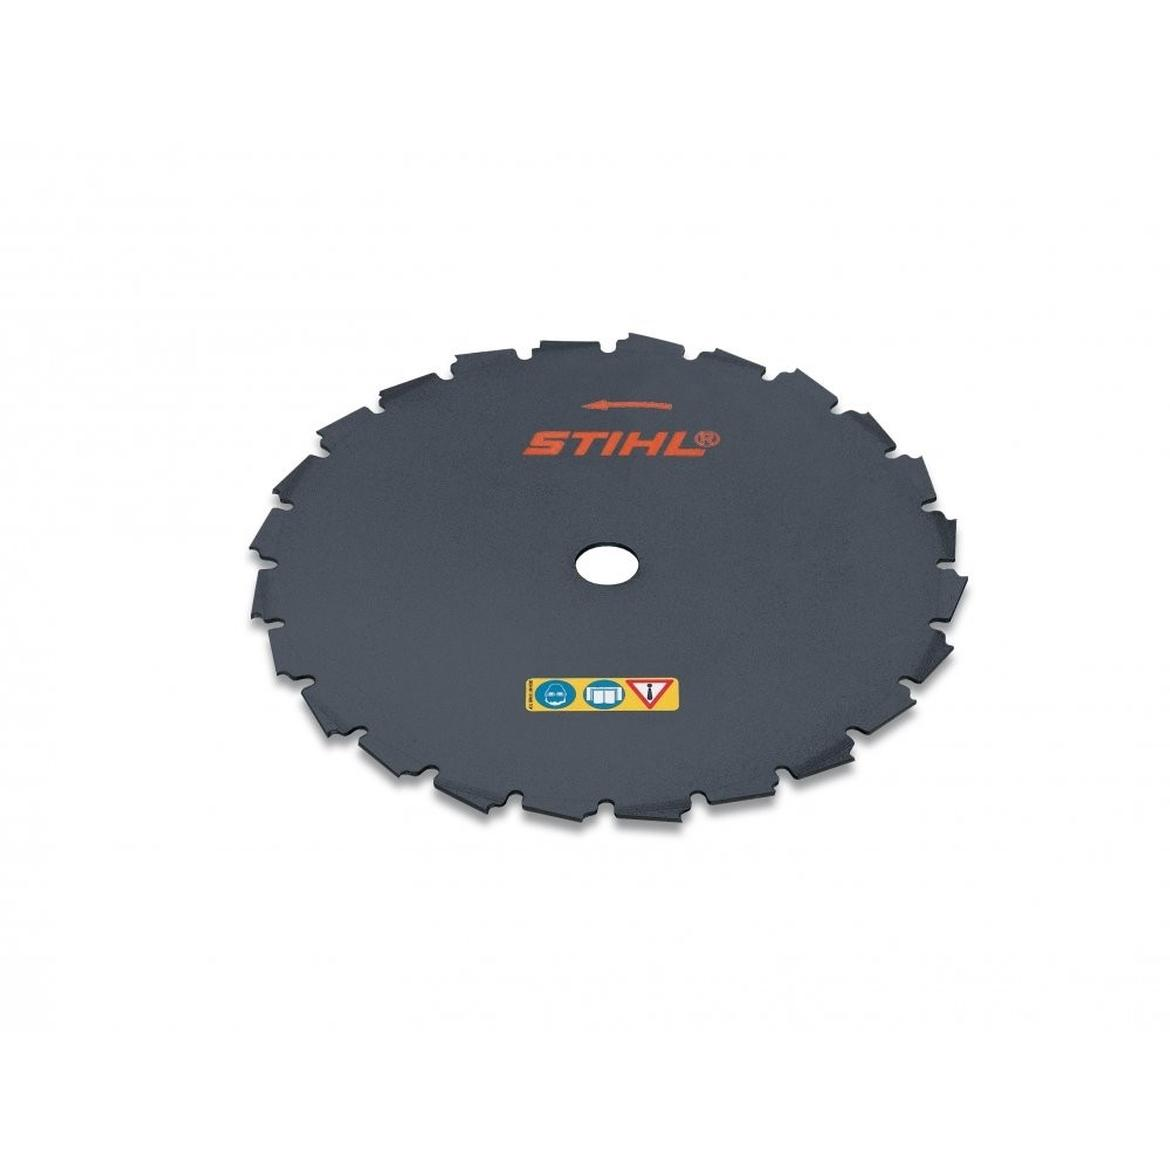 Stihl Chisel Tooth Circular Saw Blade 200mm 22t - 4112-713-4203